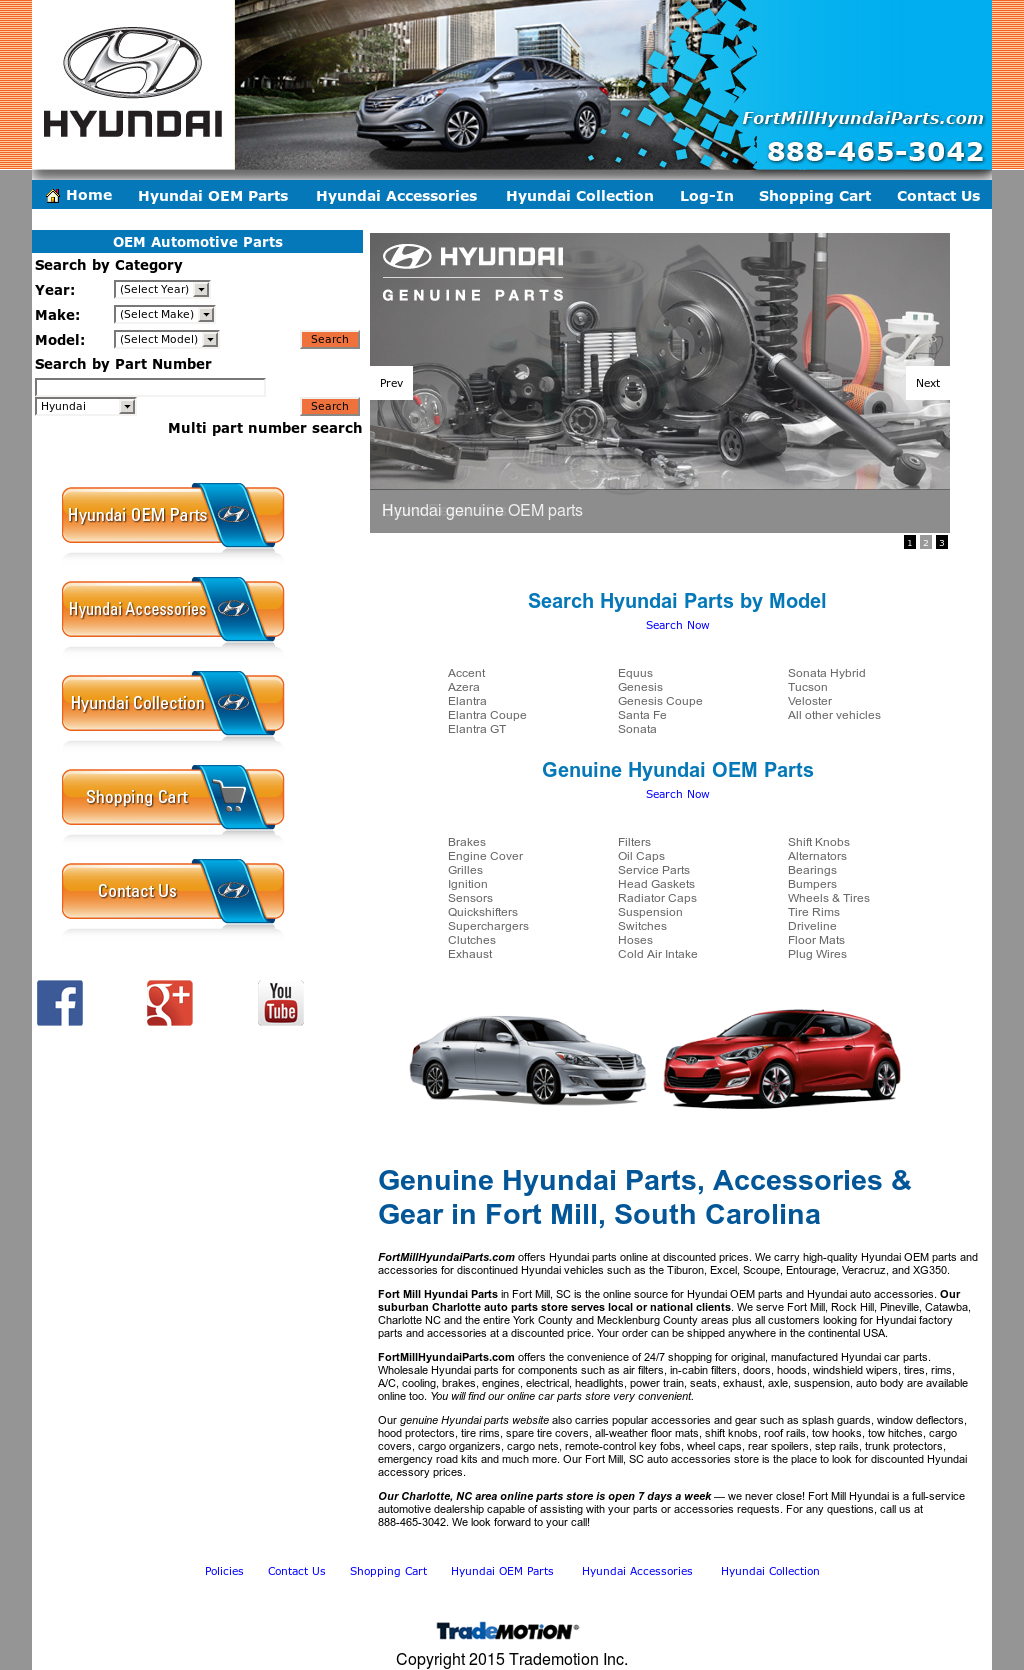 Fort Mill Hyundai Competitors, Revenue And Employees   Owler Company Profile